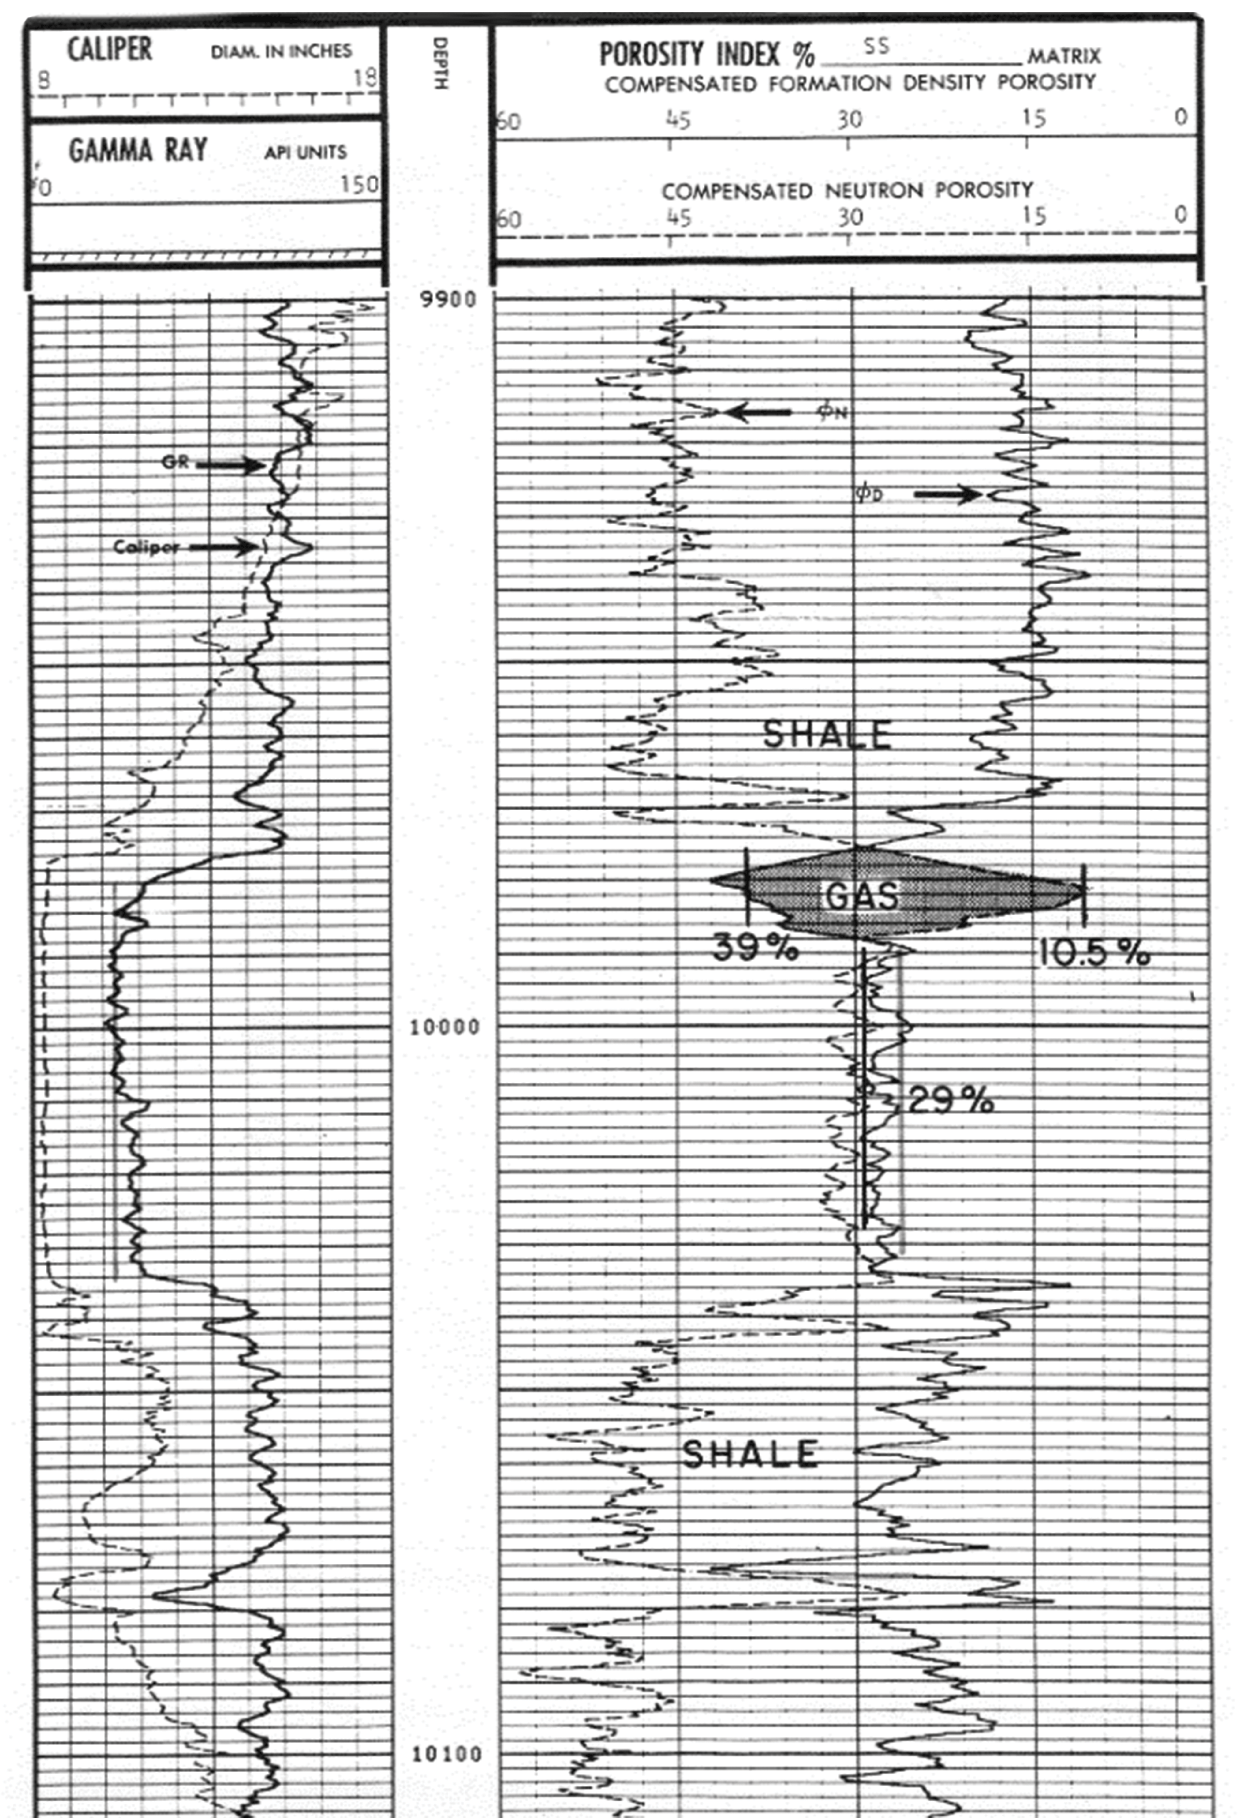 Well Logging (Chapter 11) - Geophysics and Geosequestration